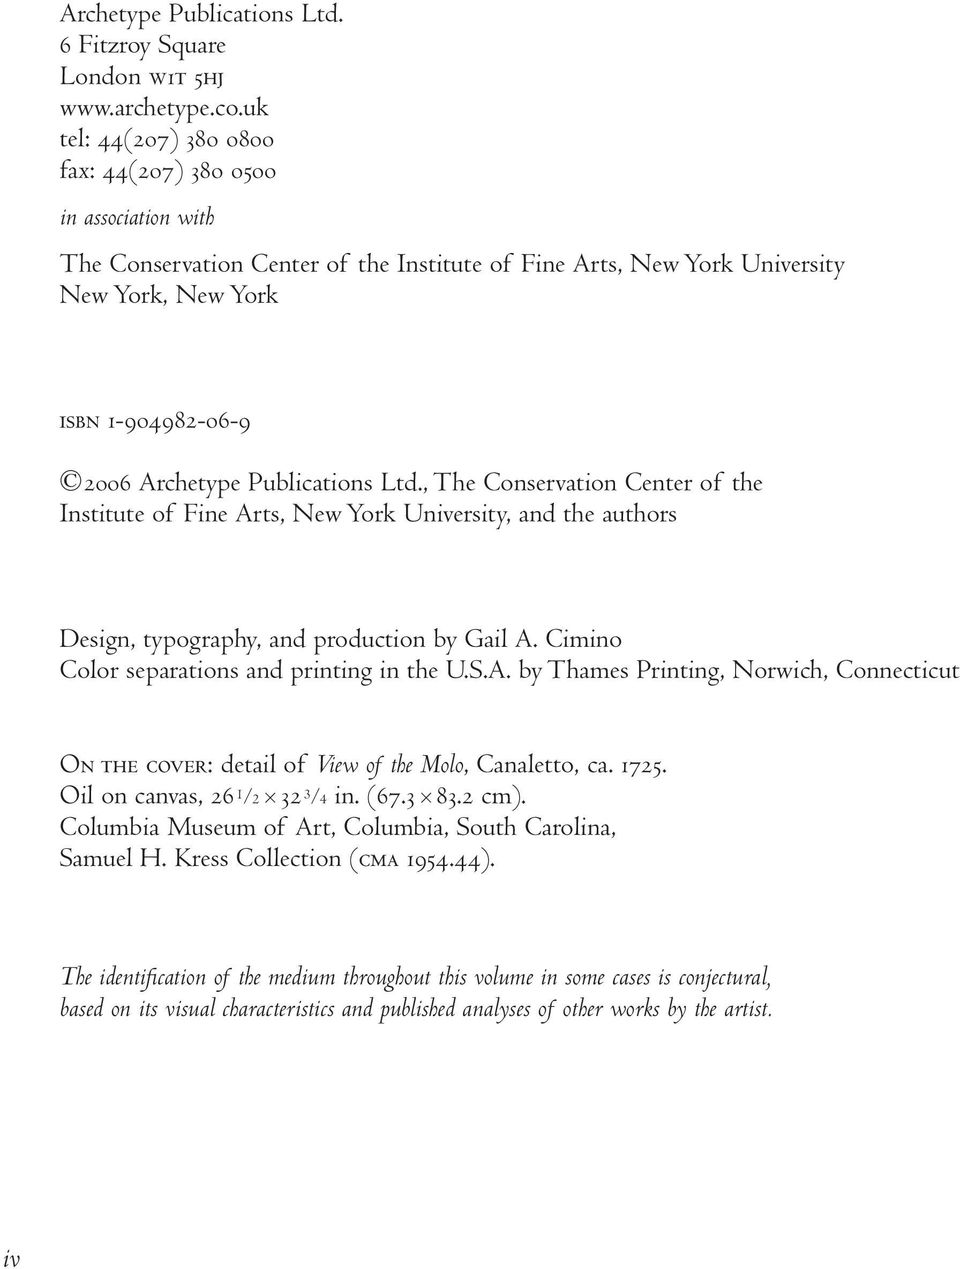 Publications Ltd., The Conservation Center of the Institute of Fine Arts, New York University, and the authors Design, typography, and production by Gail A.